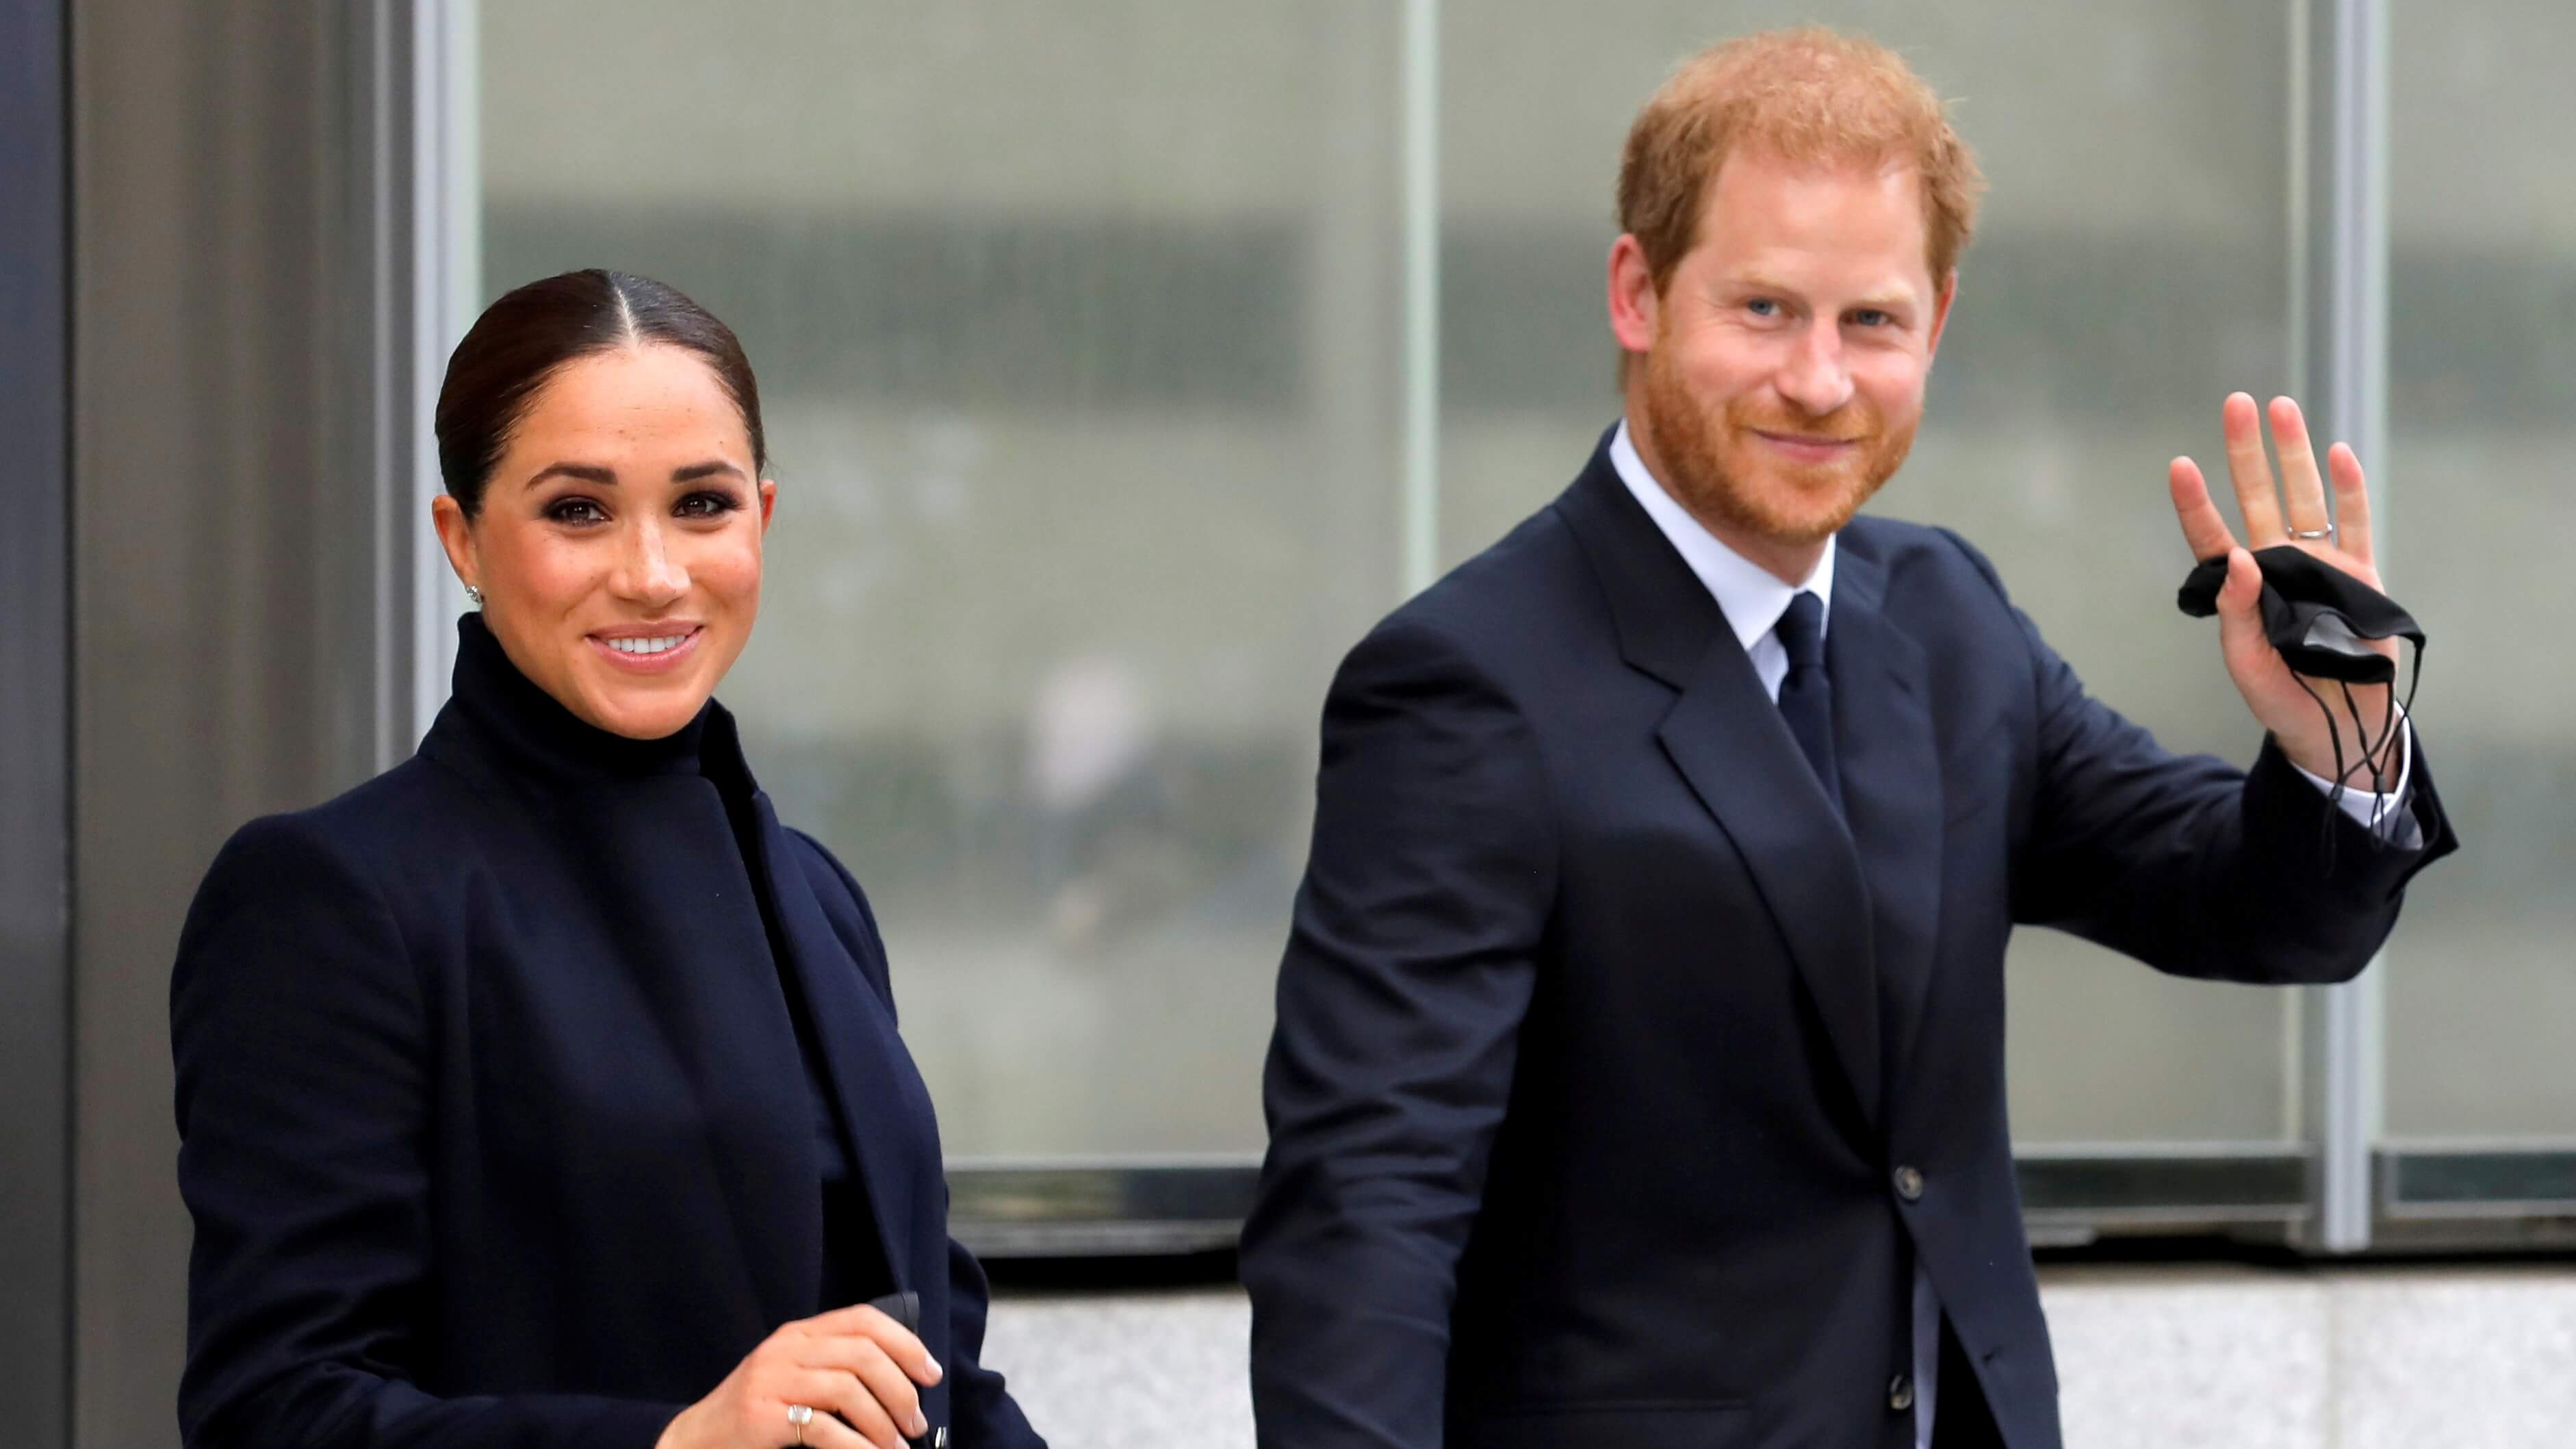 Harry And Meghan Bet On Finance With ESG Venture